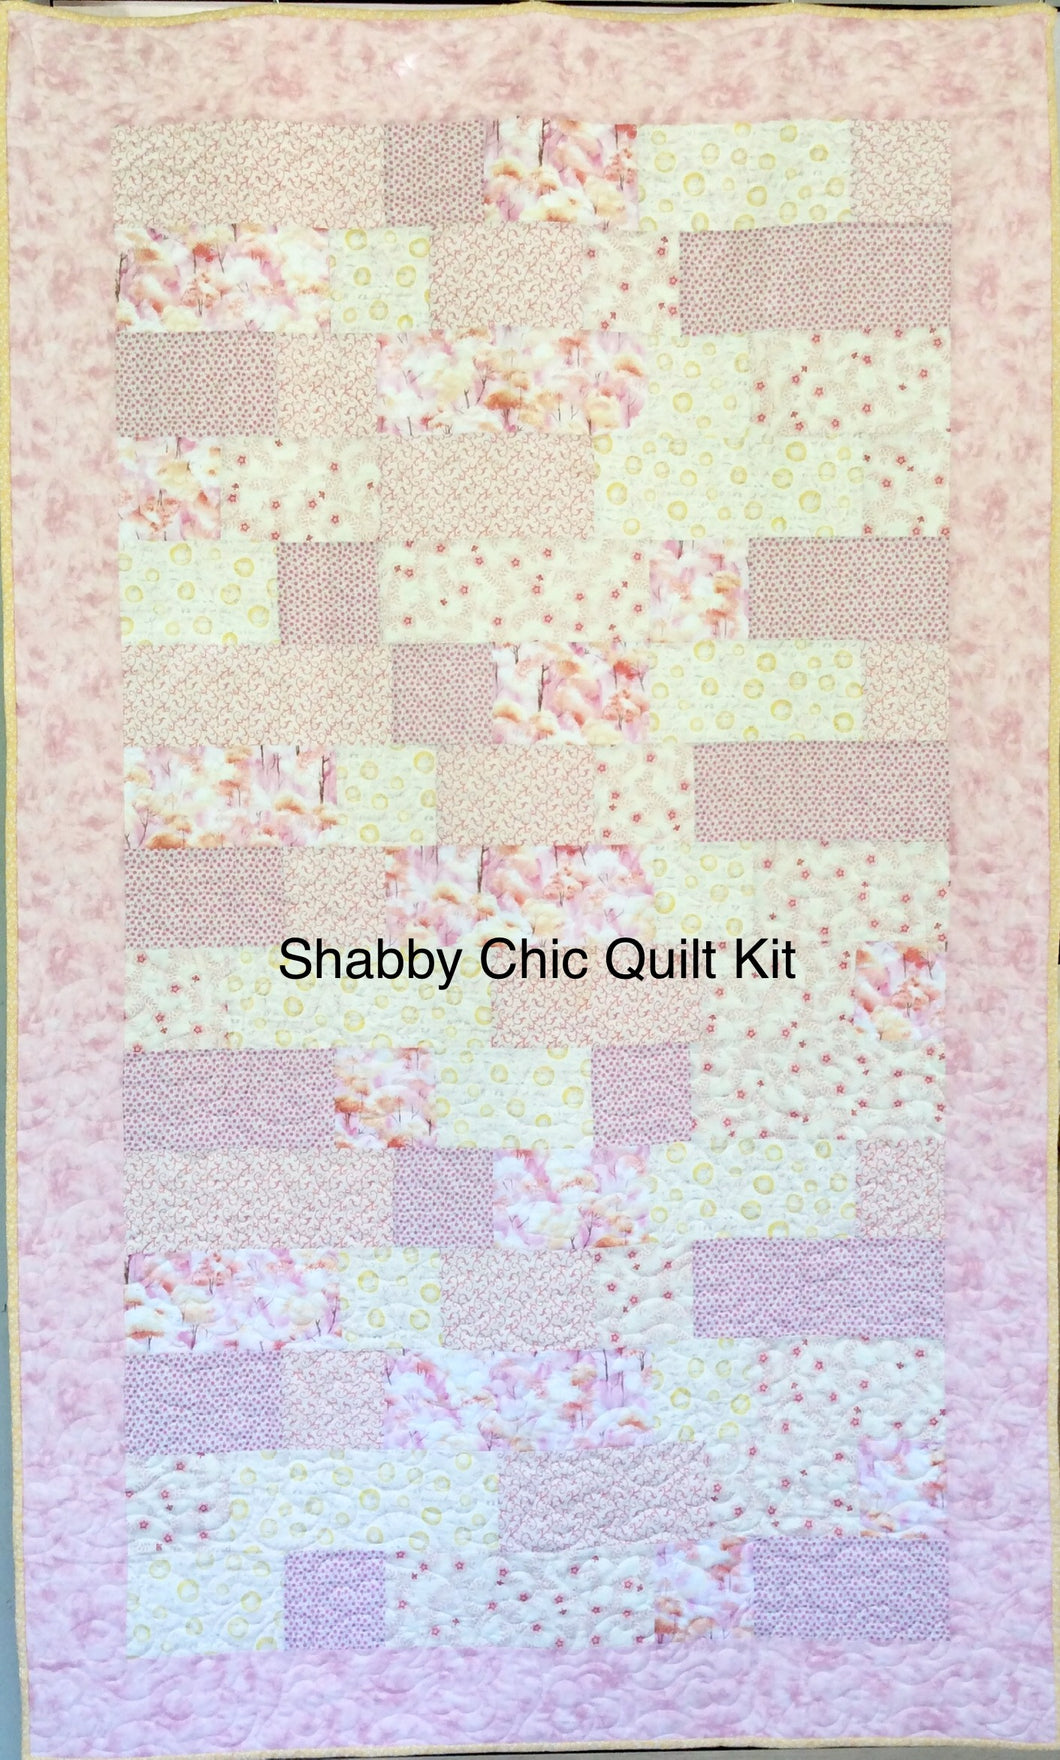 Shabby Chic Quilt Kit